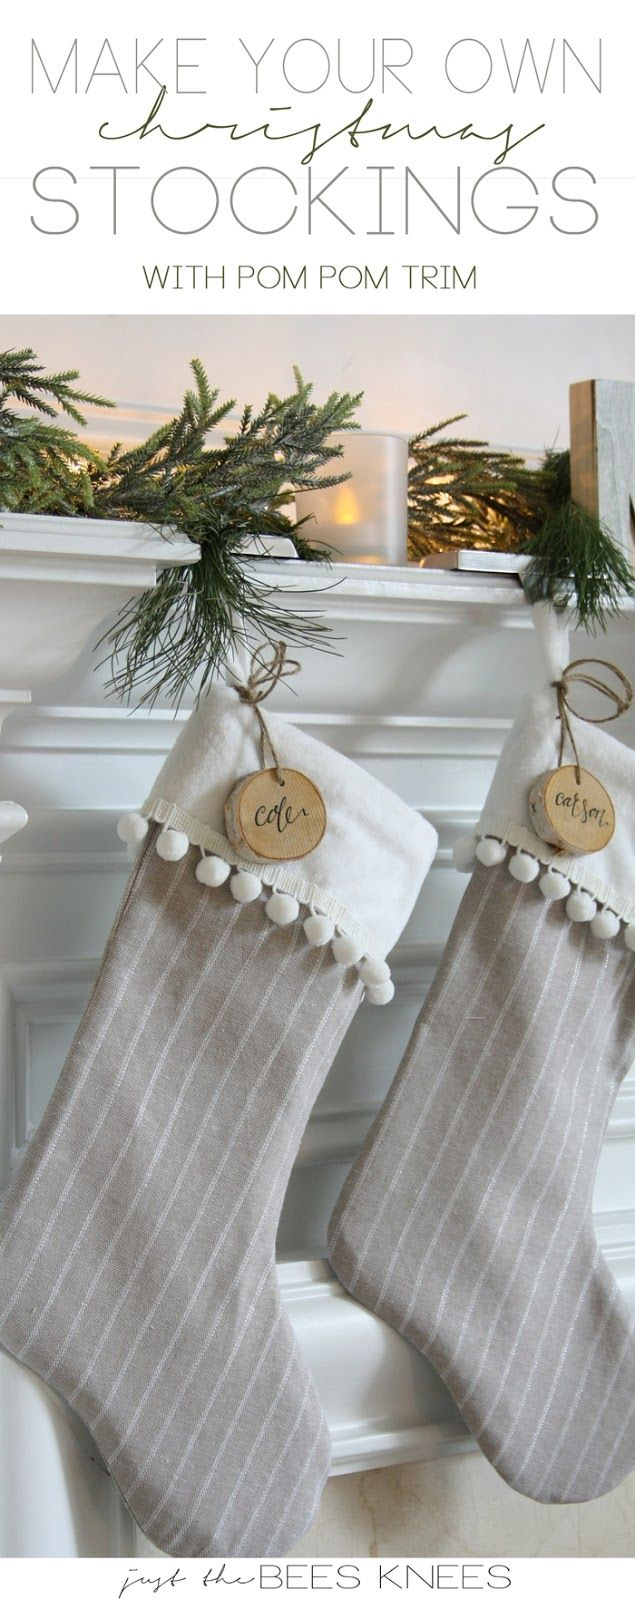 10 Minute Christmas Stocking Tutorial Created by: Crazy Little Projects – – – DIY Smocked Burlap Stockings Created by: Thistlewood Farms – – – Crochet Stocking with Free Pattern Created by: Persia Lou – – – Easy Sew Personalized Christmas Stockings Created by: Fynes Designs – – – Personalized Felt Pet Stockings Created by: Lia …